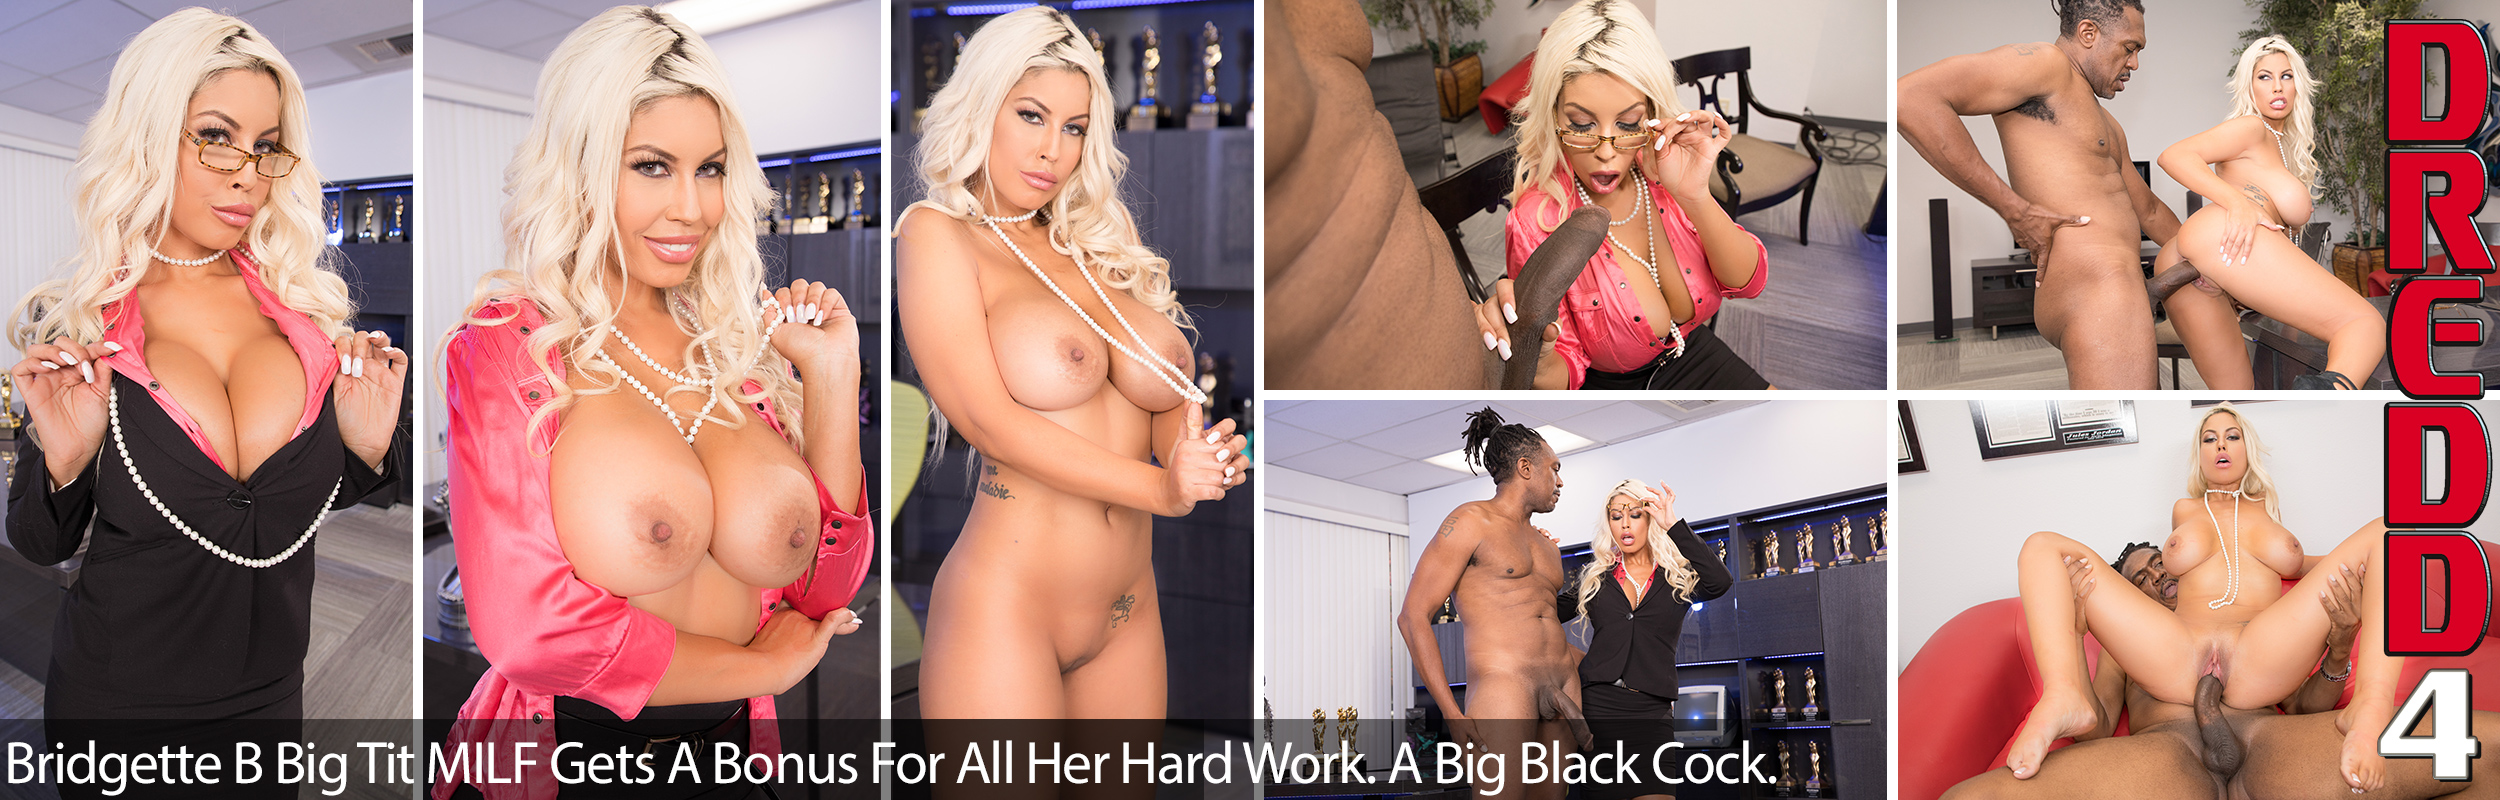 Bridgette B Big Tit MILF Gets A Bonus For All Her Hard Work. A Big Black Cock.